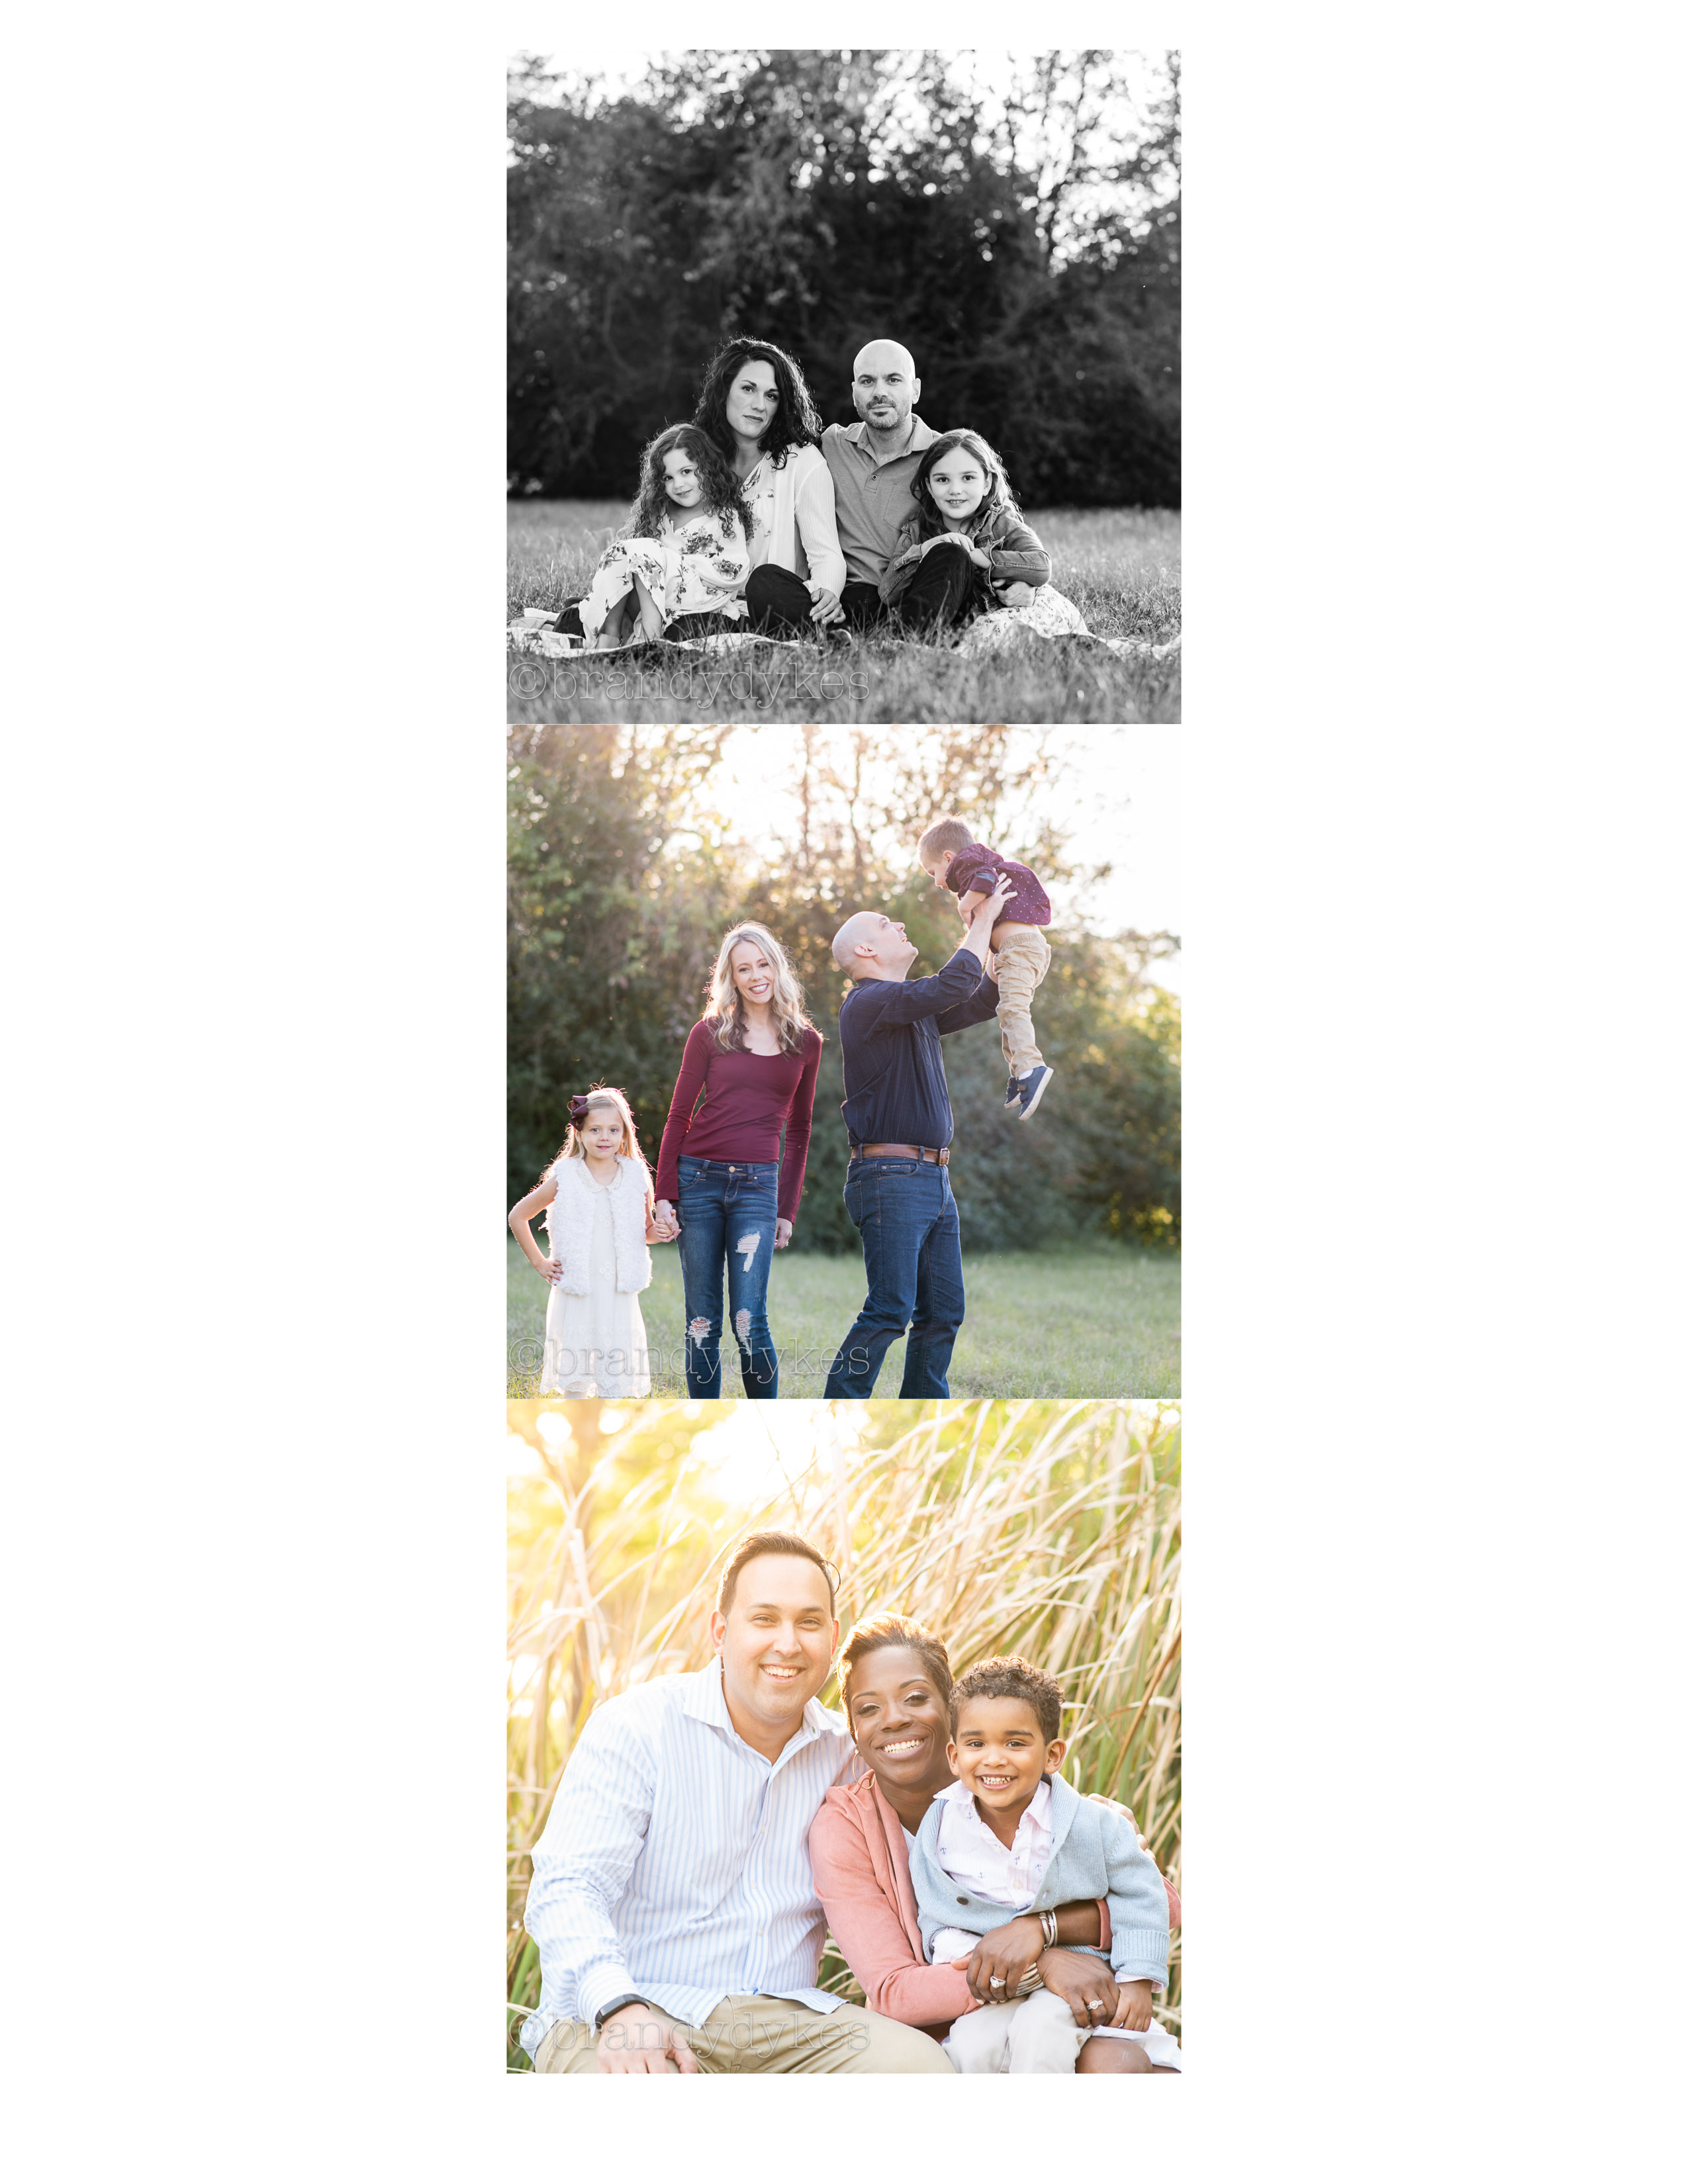 Cypress Texas Family Photographer, Fall Family Photos, Brandy Dykes Photography, Houston Family Photographer, Three families with young children in Cypress have their portraits taken.